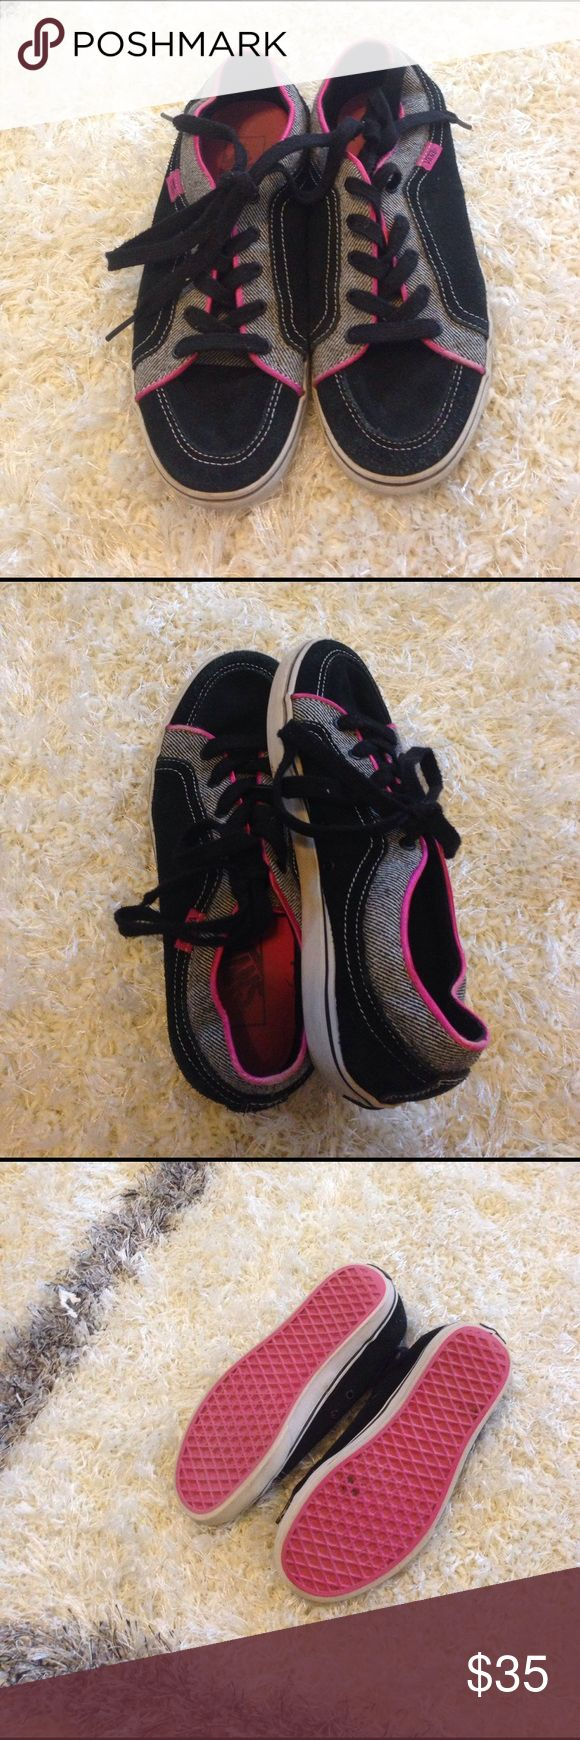 NWOT 👟 woman's vans size 7.5 👟 NWOT. Woman's vans sneakers / athletic shoes  size 7.5w 5m. Great condition! 👟👟 Only wore a few times then stopped because it kept hurting my heel, so it never had the chance to get broken in!  Super cute, black, with grey and white stripes, pink lining and black laces. 👟☺️ Vans Shoes Sneakers